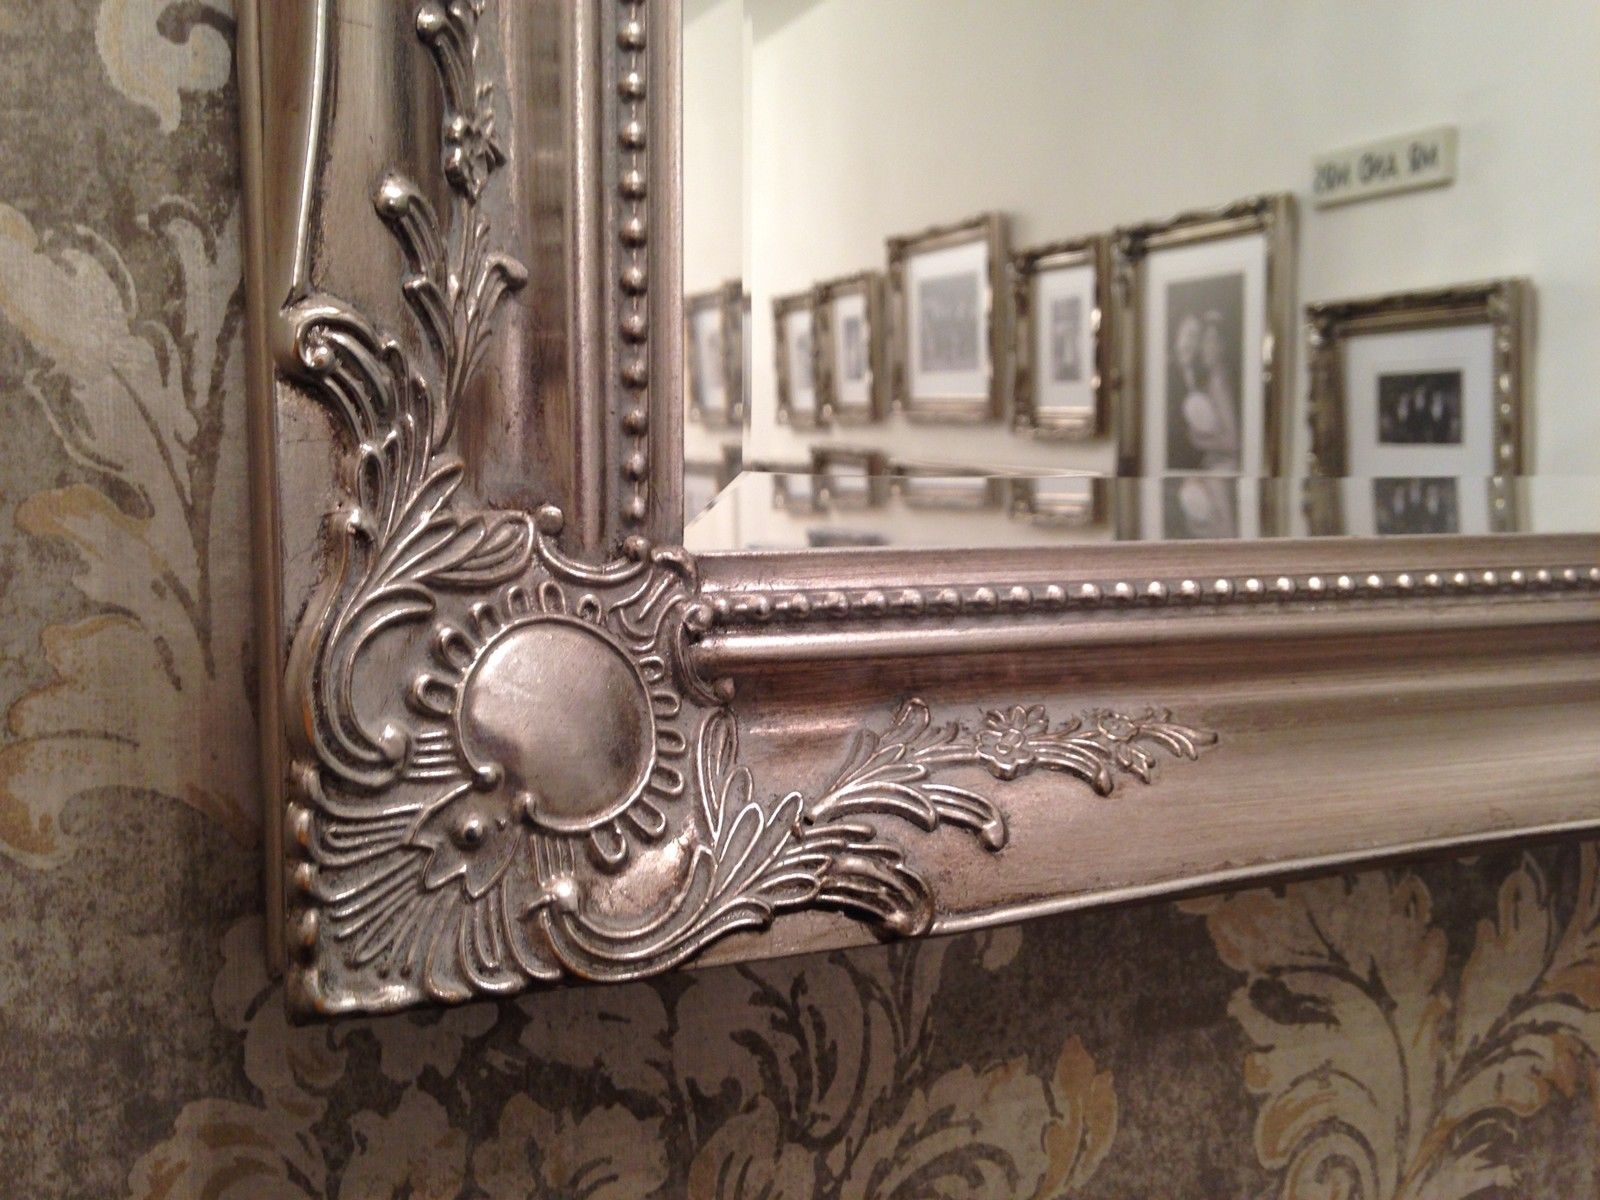 X LARGE Antique Silver Shabby Chic Ornate Decorative Wall